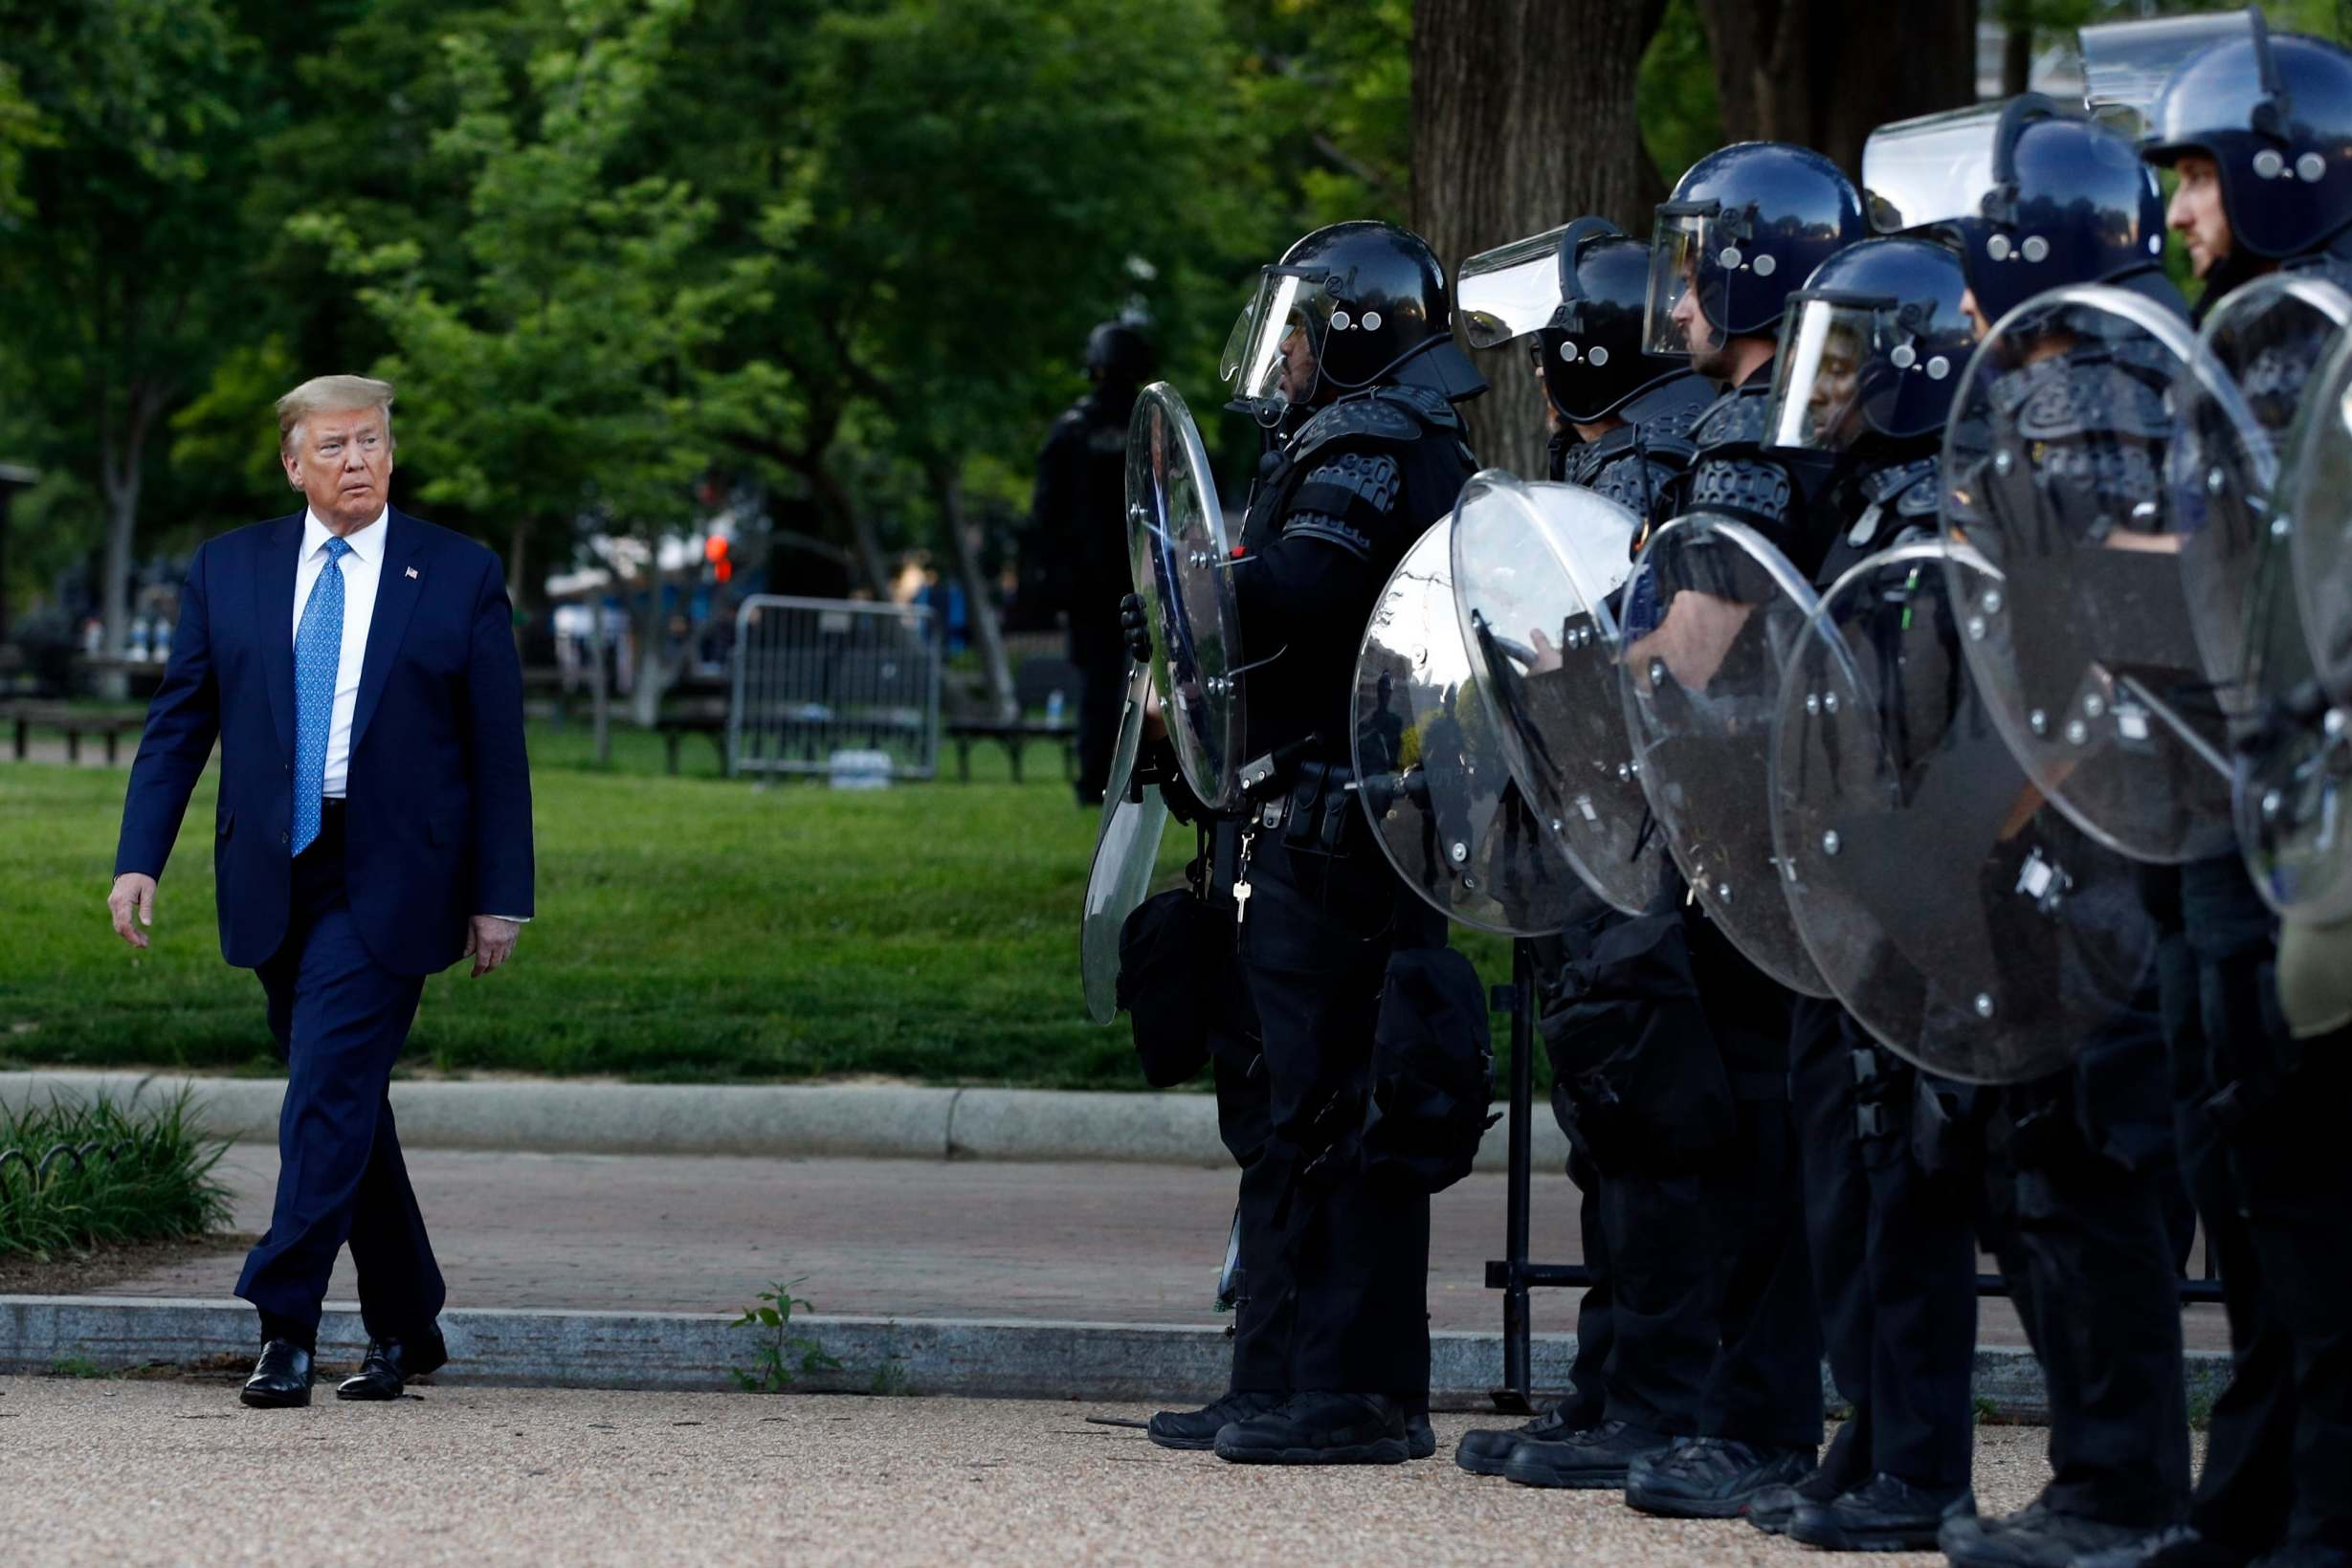 Trump's Secret Service director called to brief Congress about violent dispersal of peaceful protesters near White House